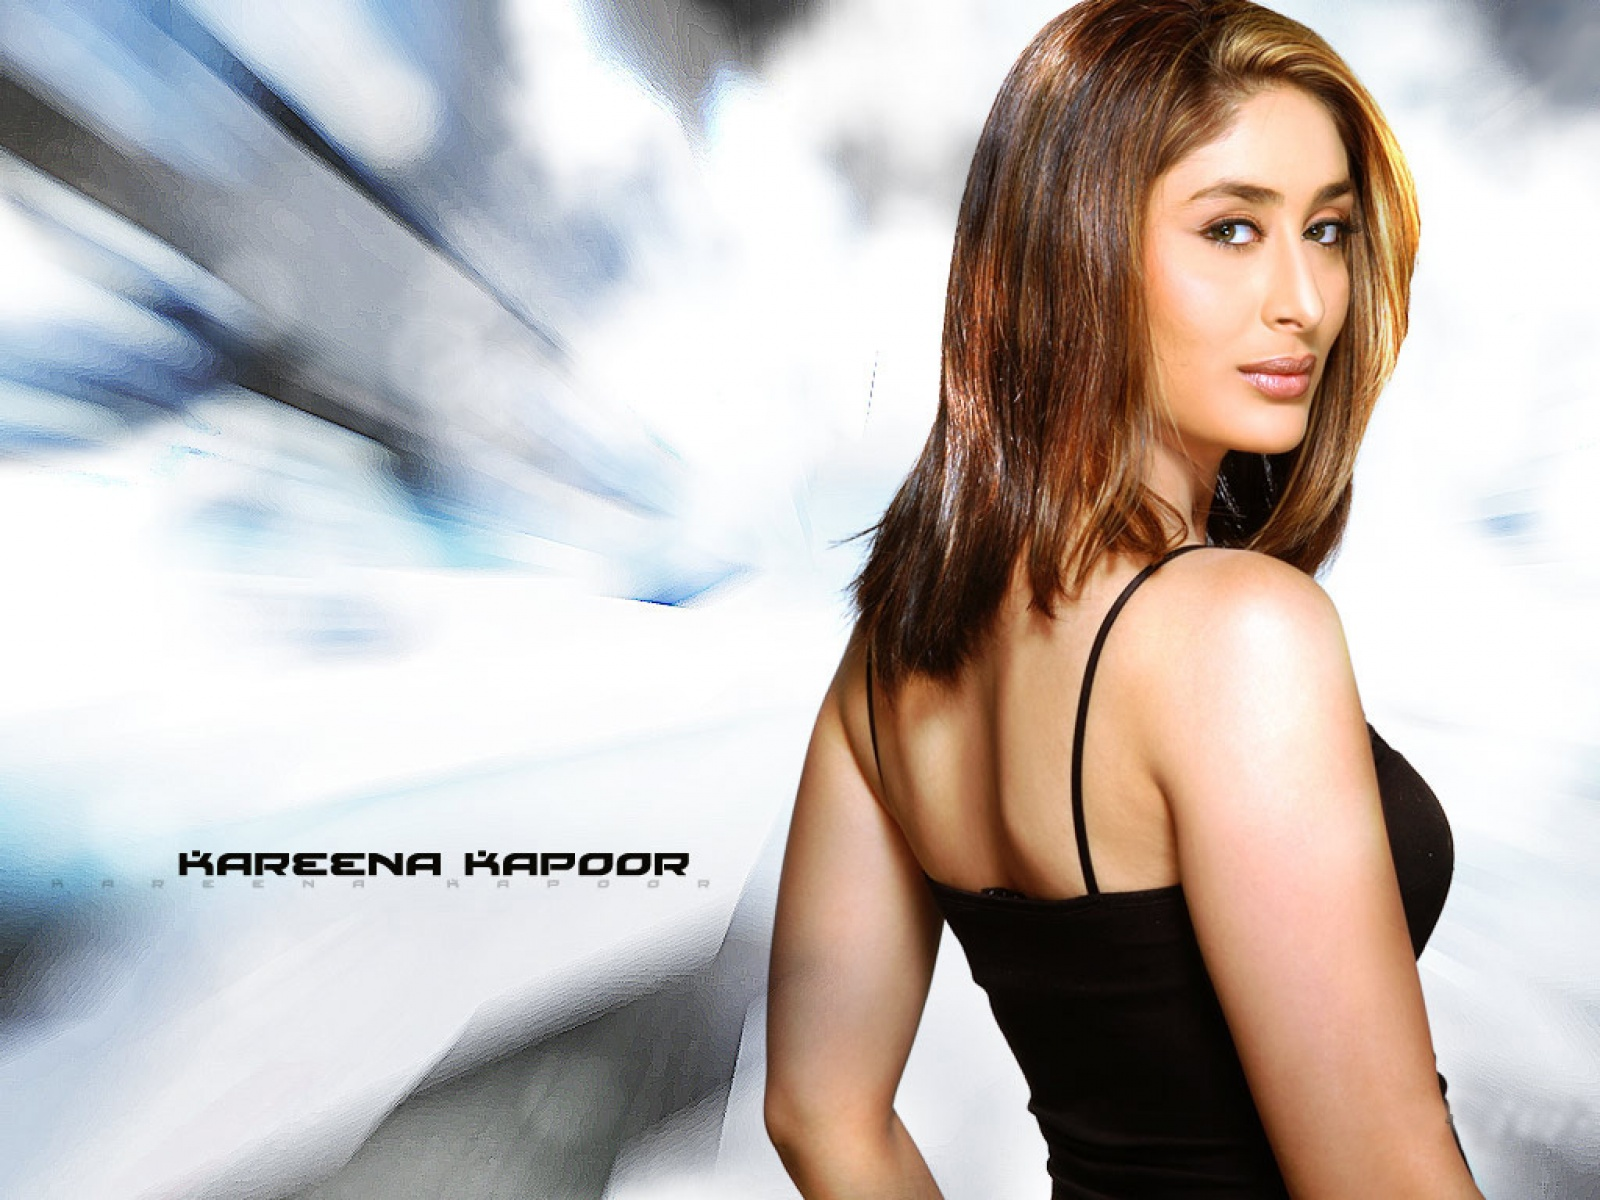 768-kareena-kapoor-wallpaper